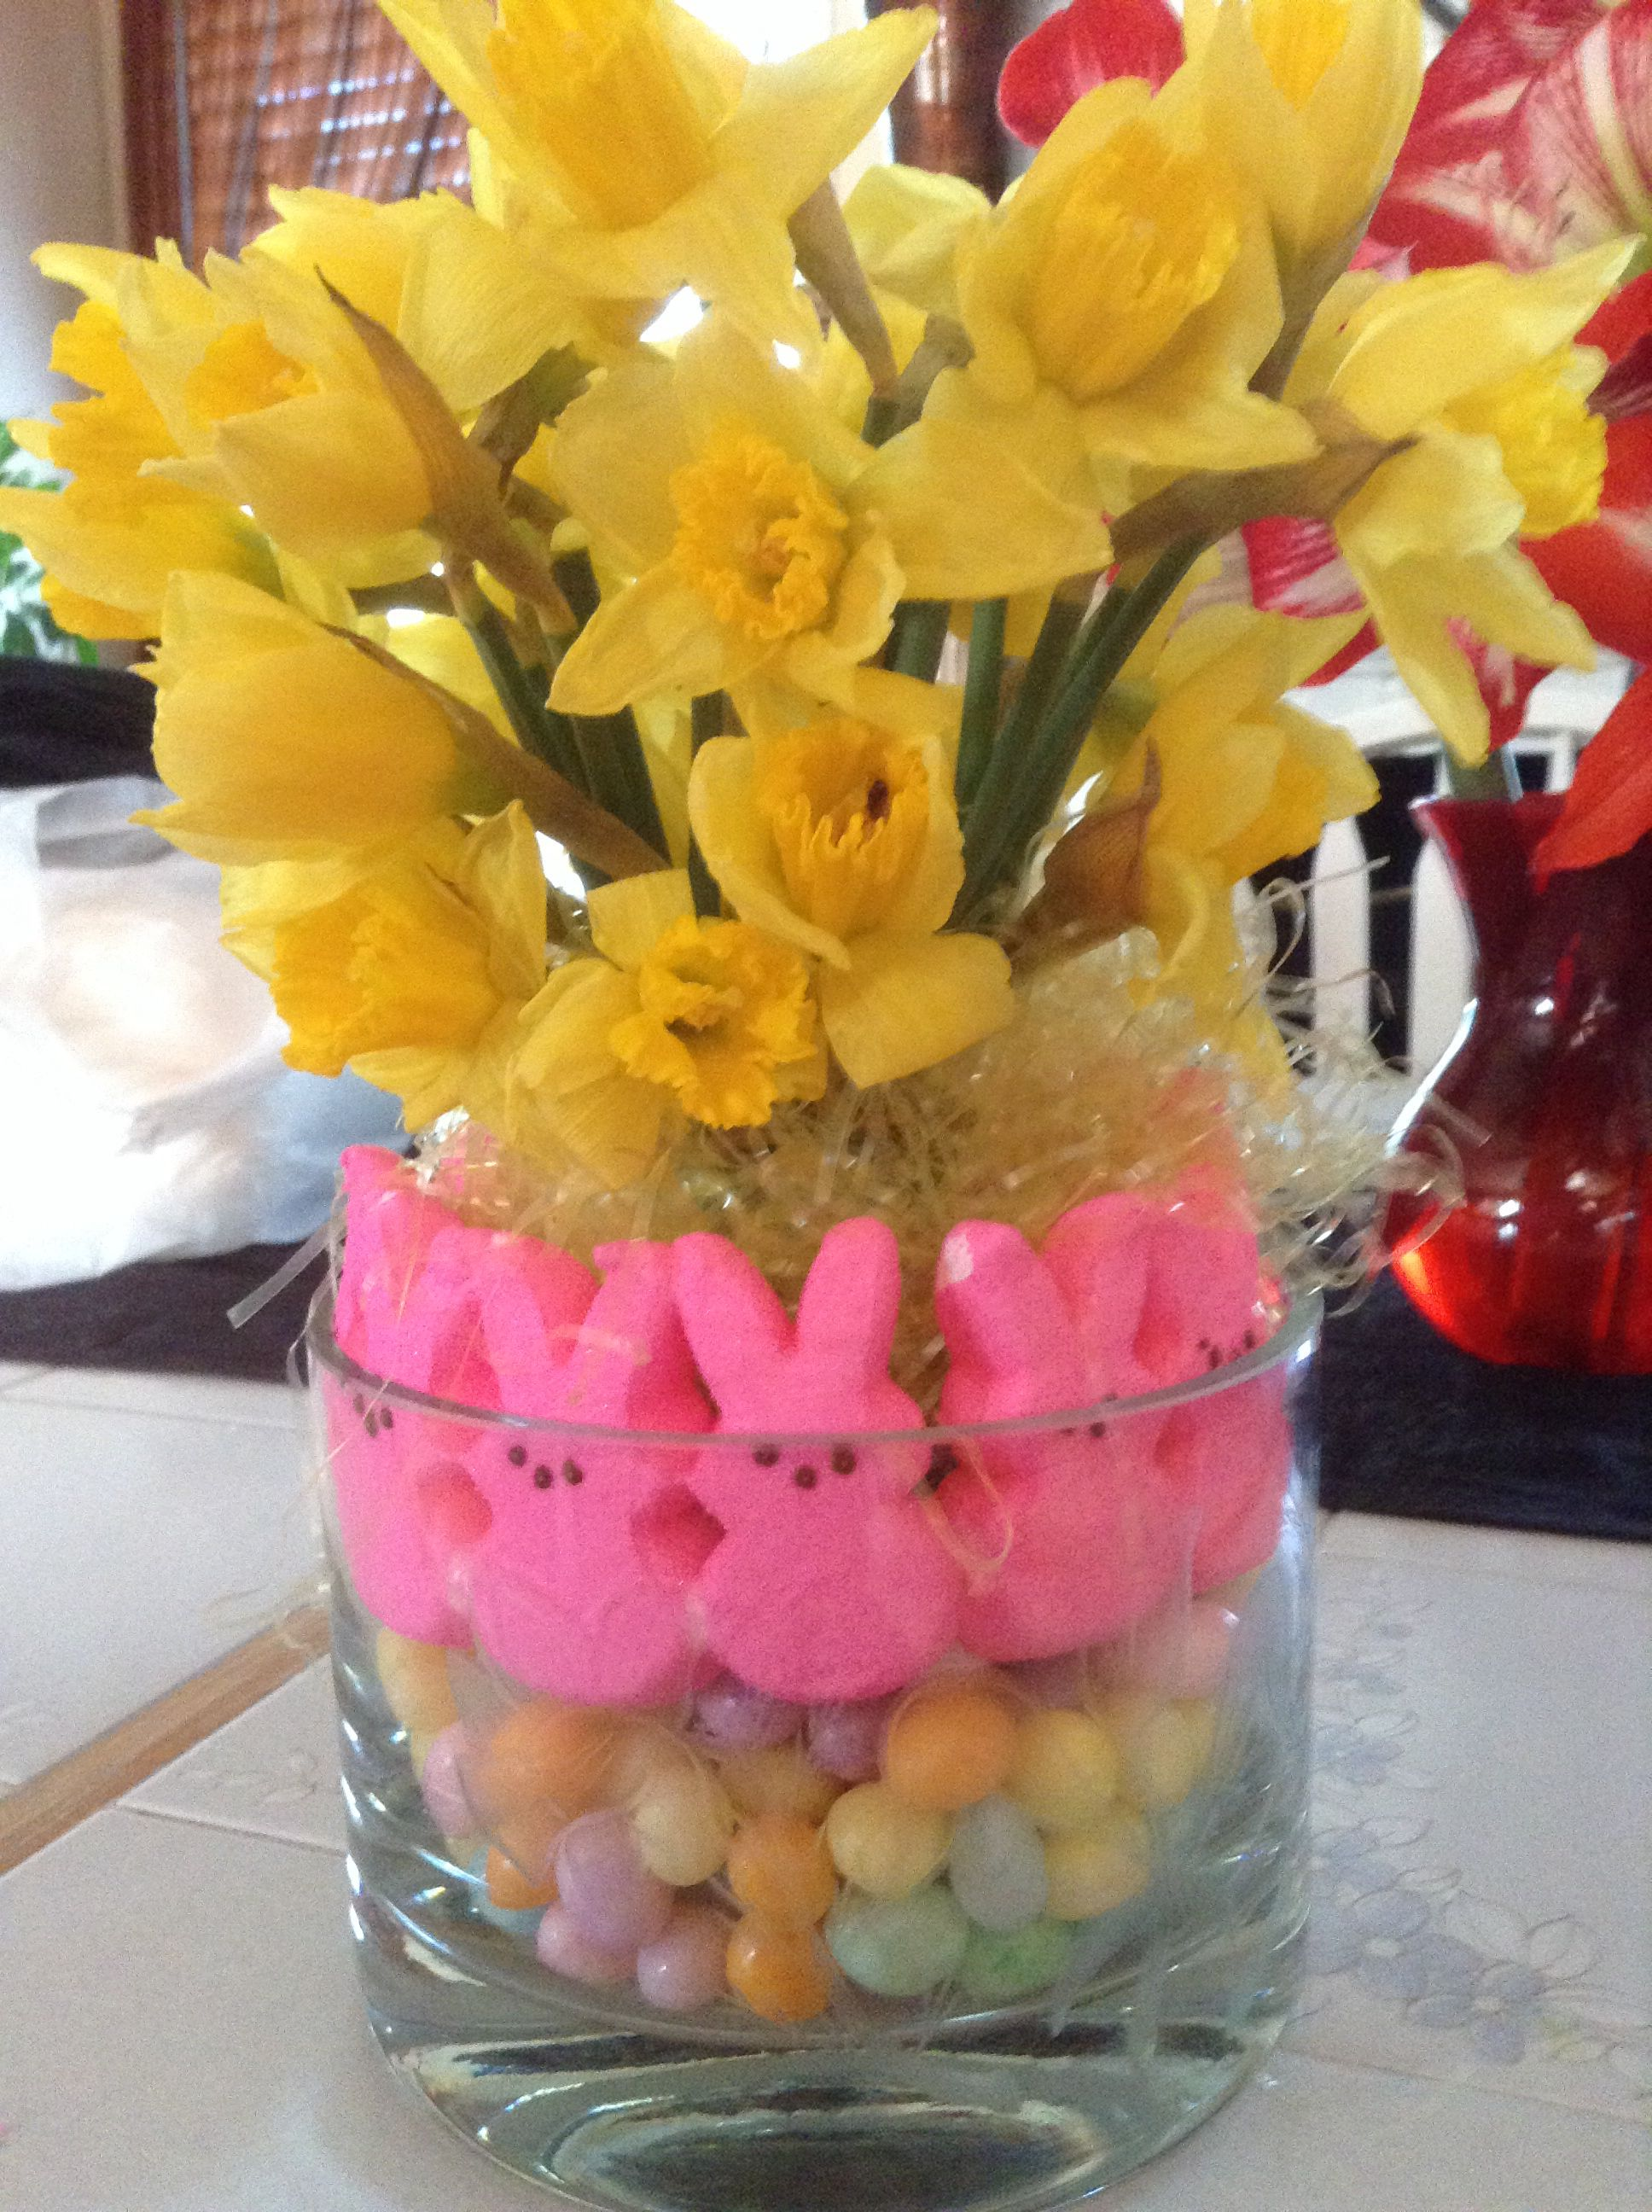 Easter flowers with jelly beans and peeps.4/20/14